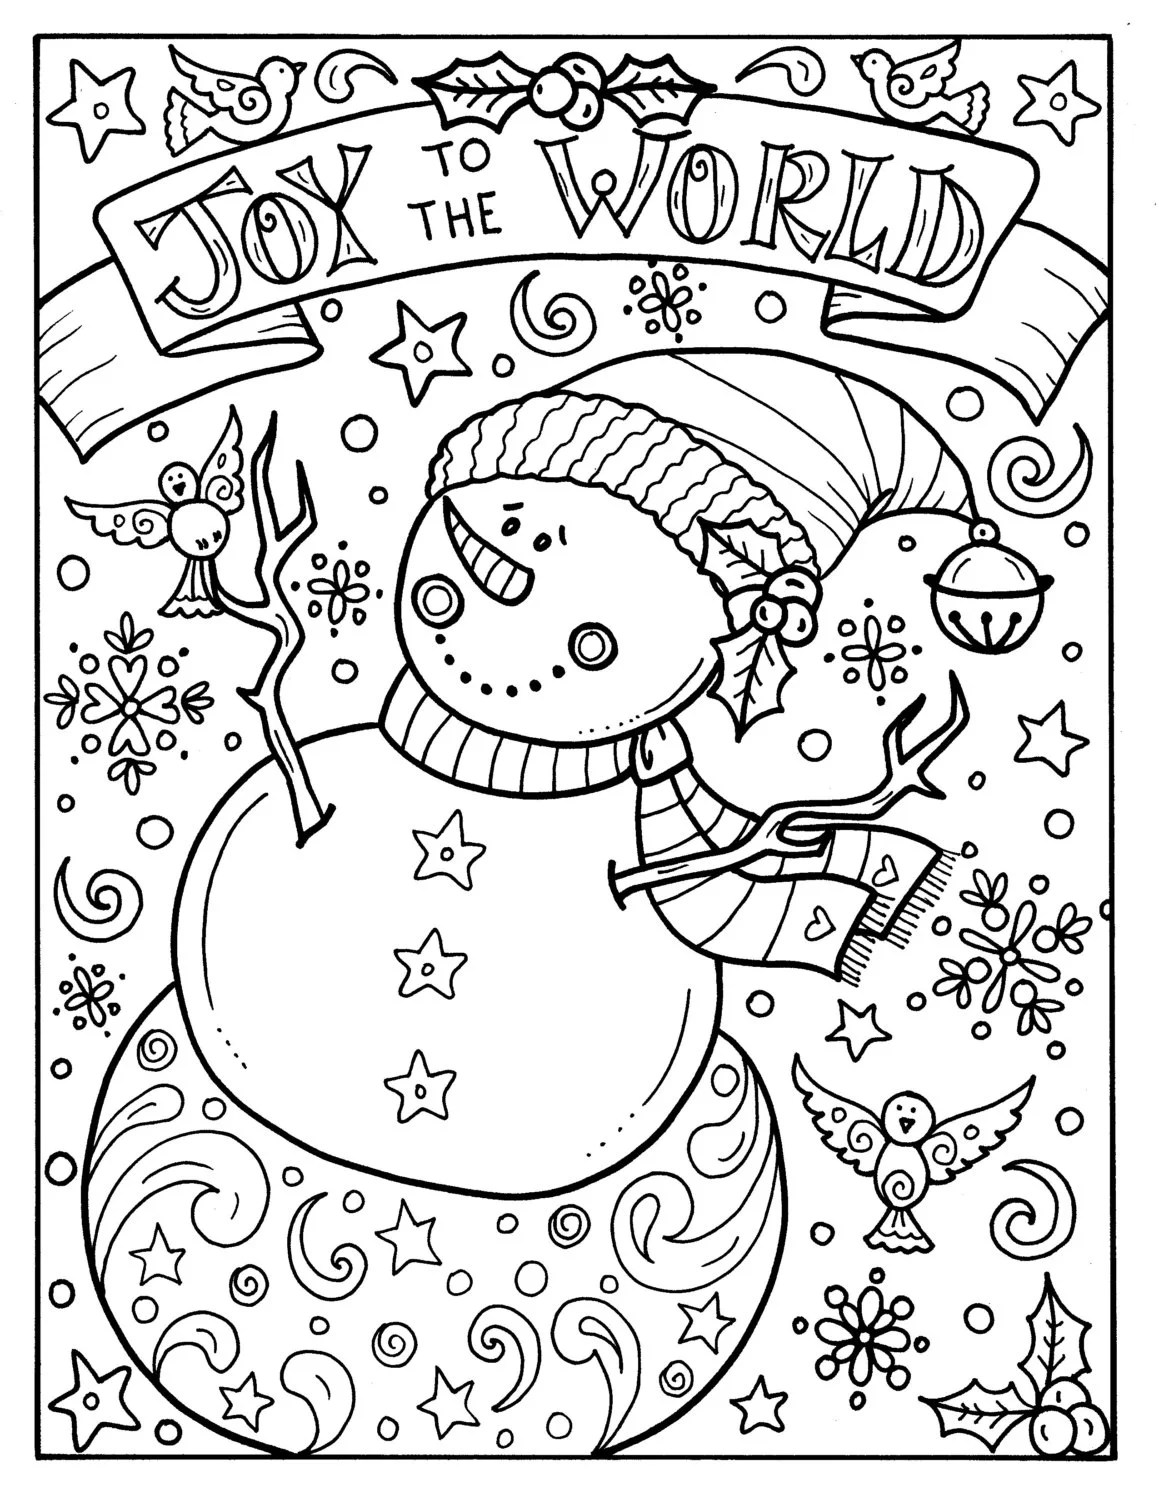 Snowman Joy To The World Digital Download Christmas Coloring